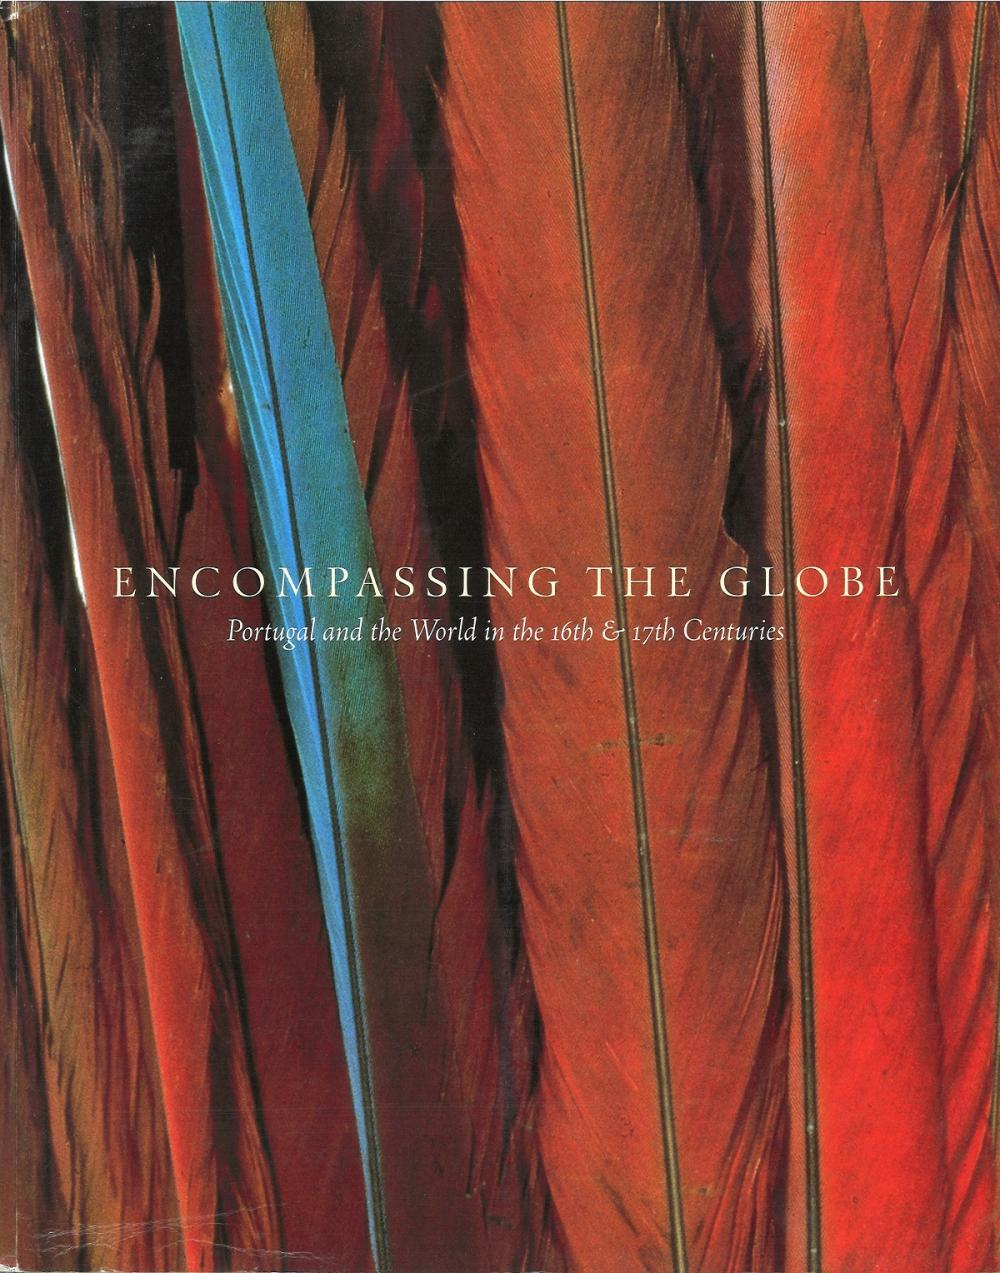 Encompassing the Globe by Jay Levenson. Unsigned large softback book with no dust jacket published